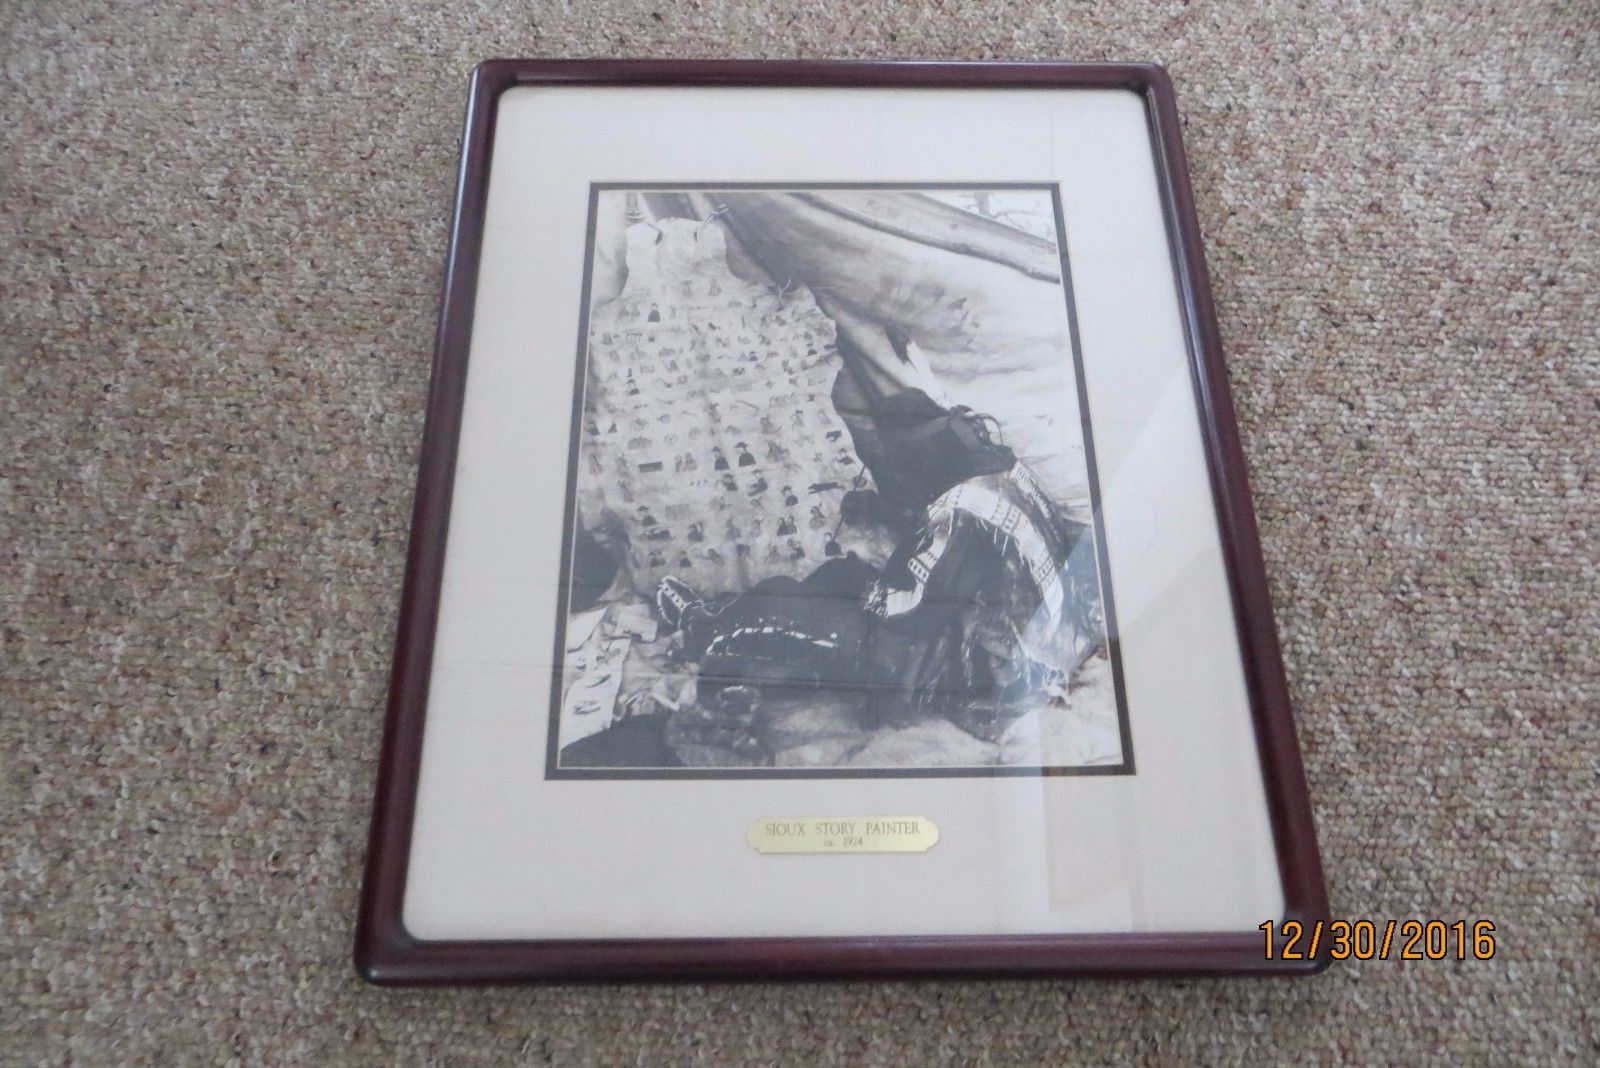 SIOUX STORY PAINTER ca.1924 framed and matted professionally cherrywood frame